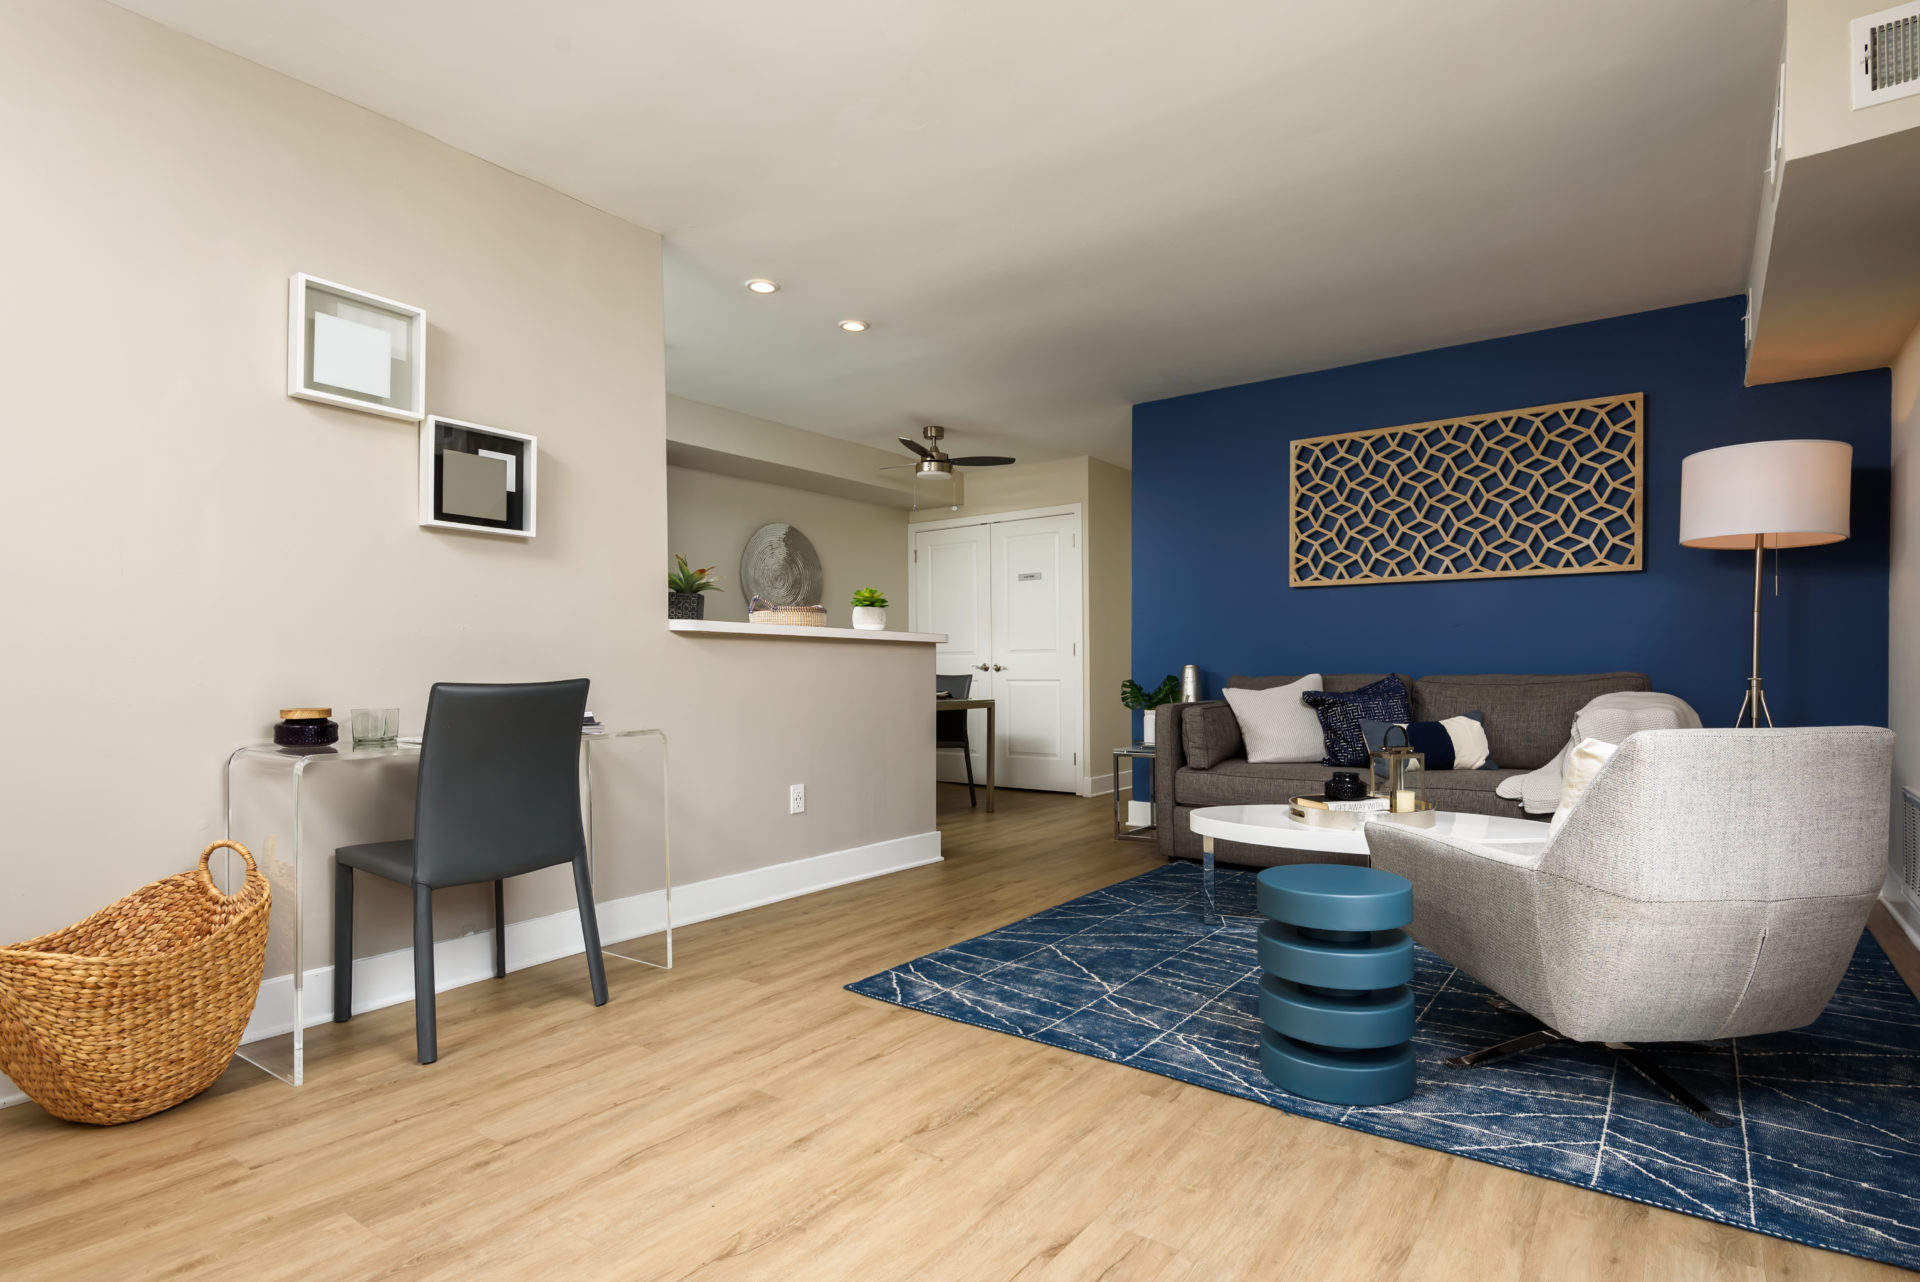 RWP.8.12.19.Coopers.Place.2.Bedroom.-3